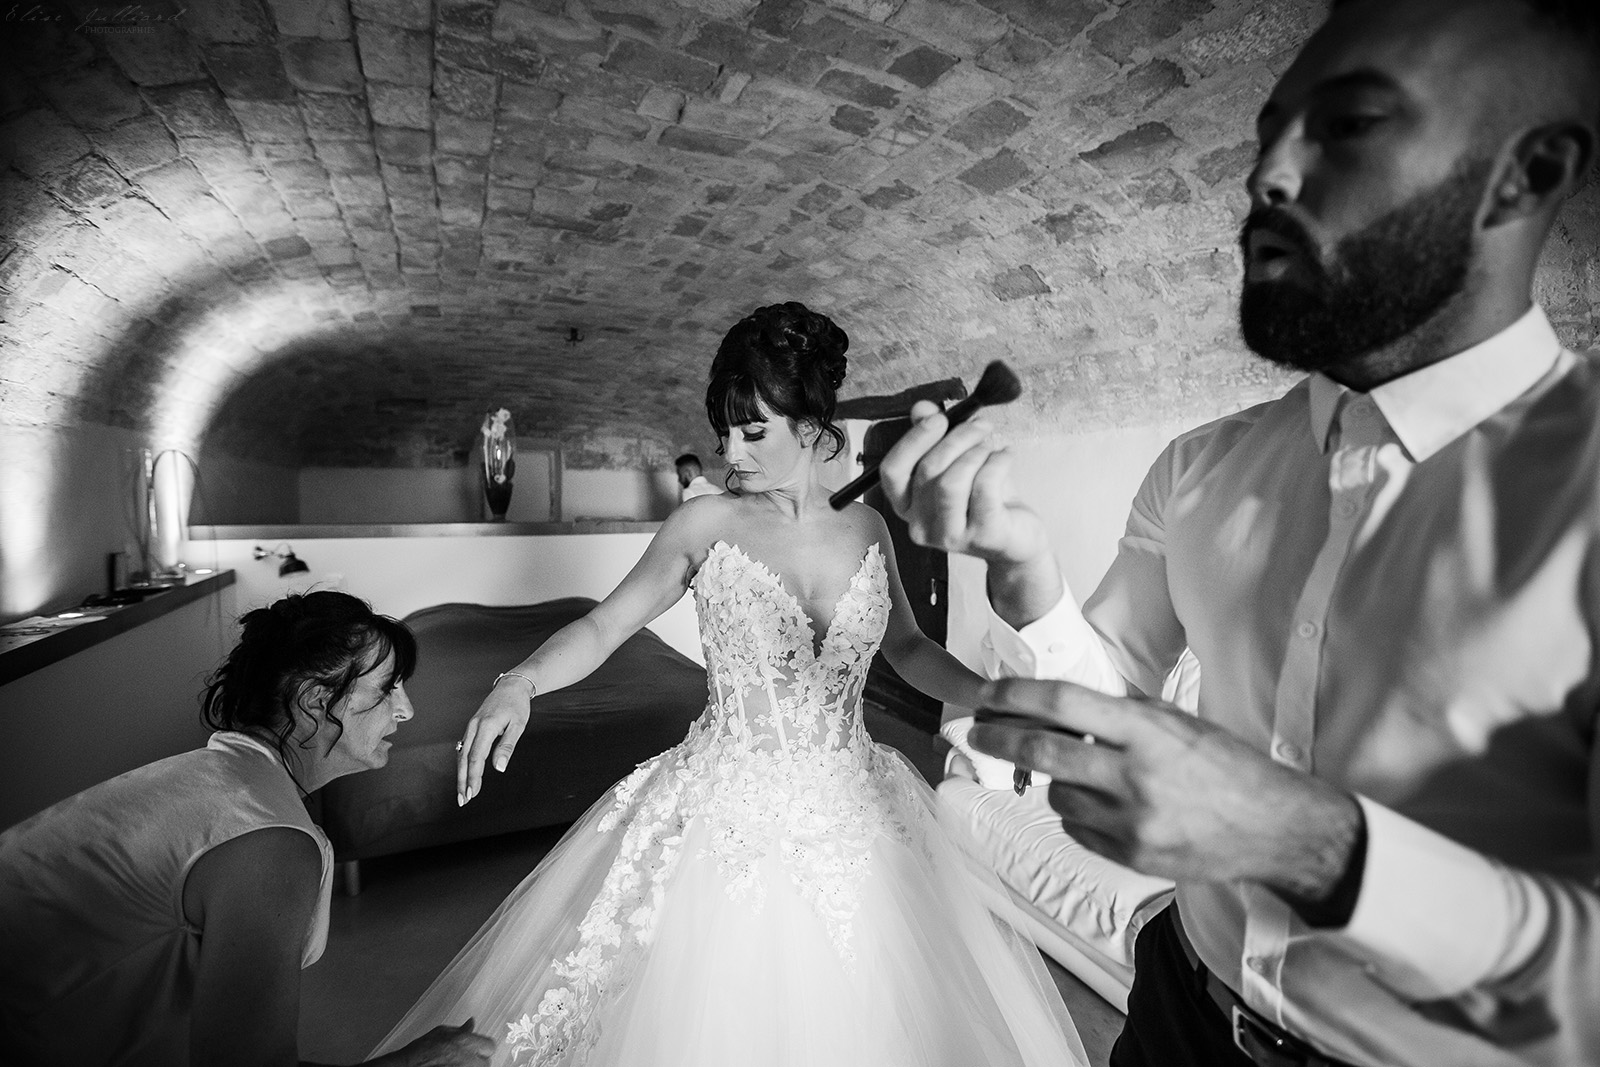 mariage-nimes-provence-alpes-cote-azue-languedoc-occitanie-domaine-la-baraque-de-serignac-alliances-olivier-wedding-reportage-seance-photo-couple-elise-julliard-photographe-4